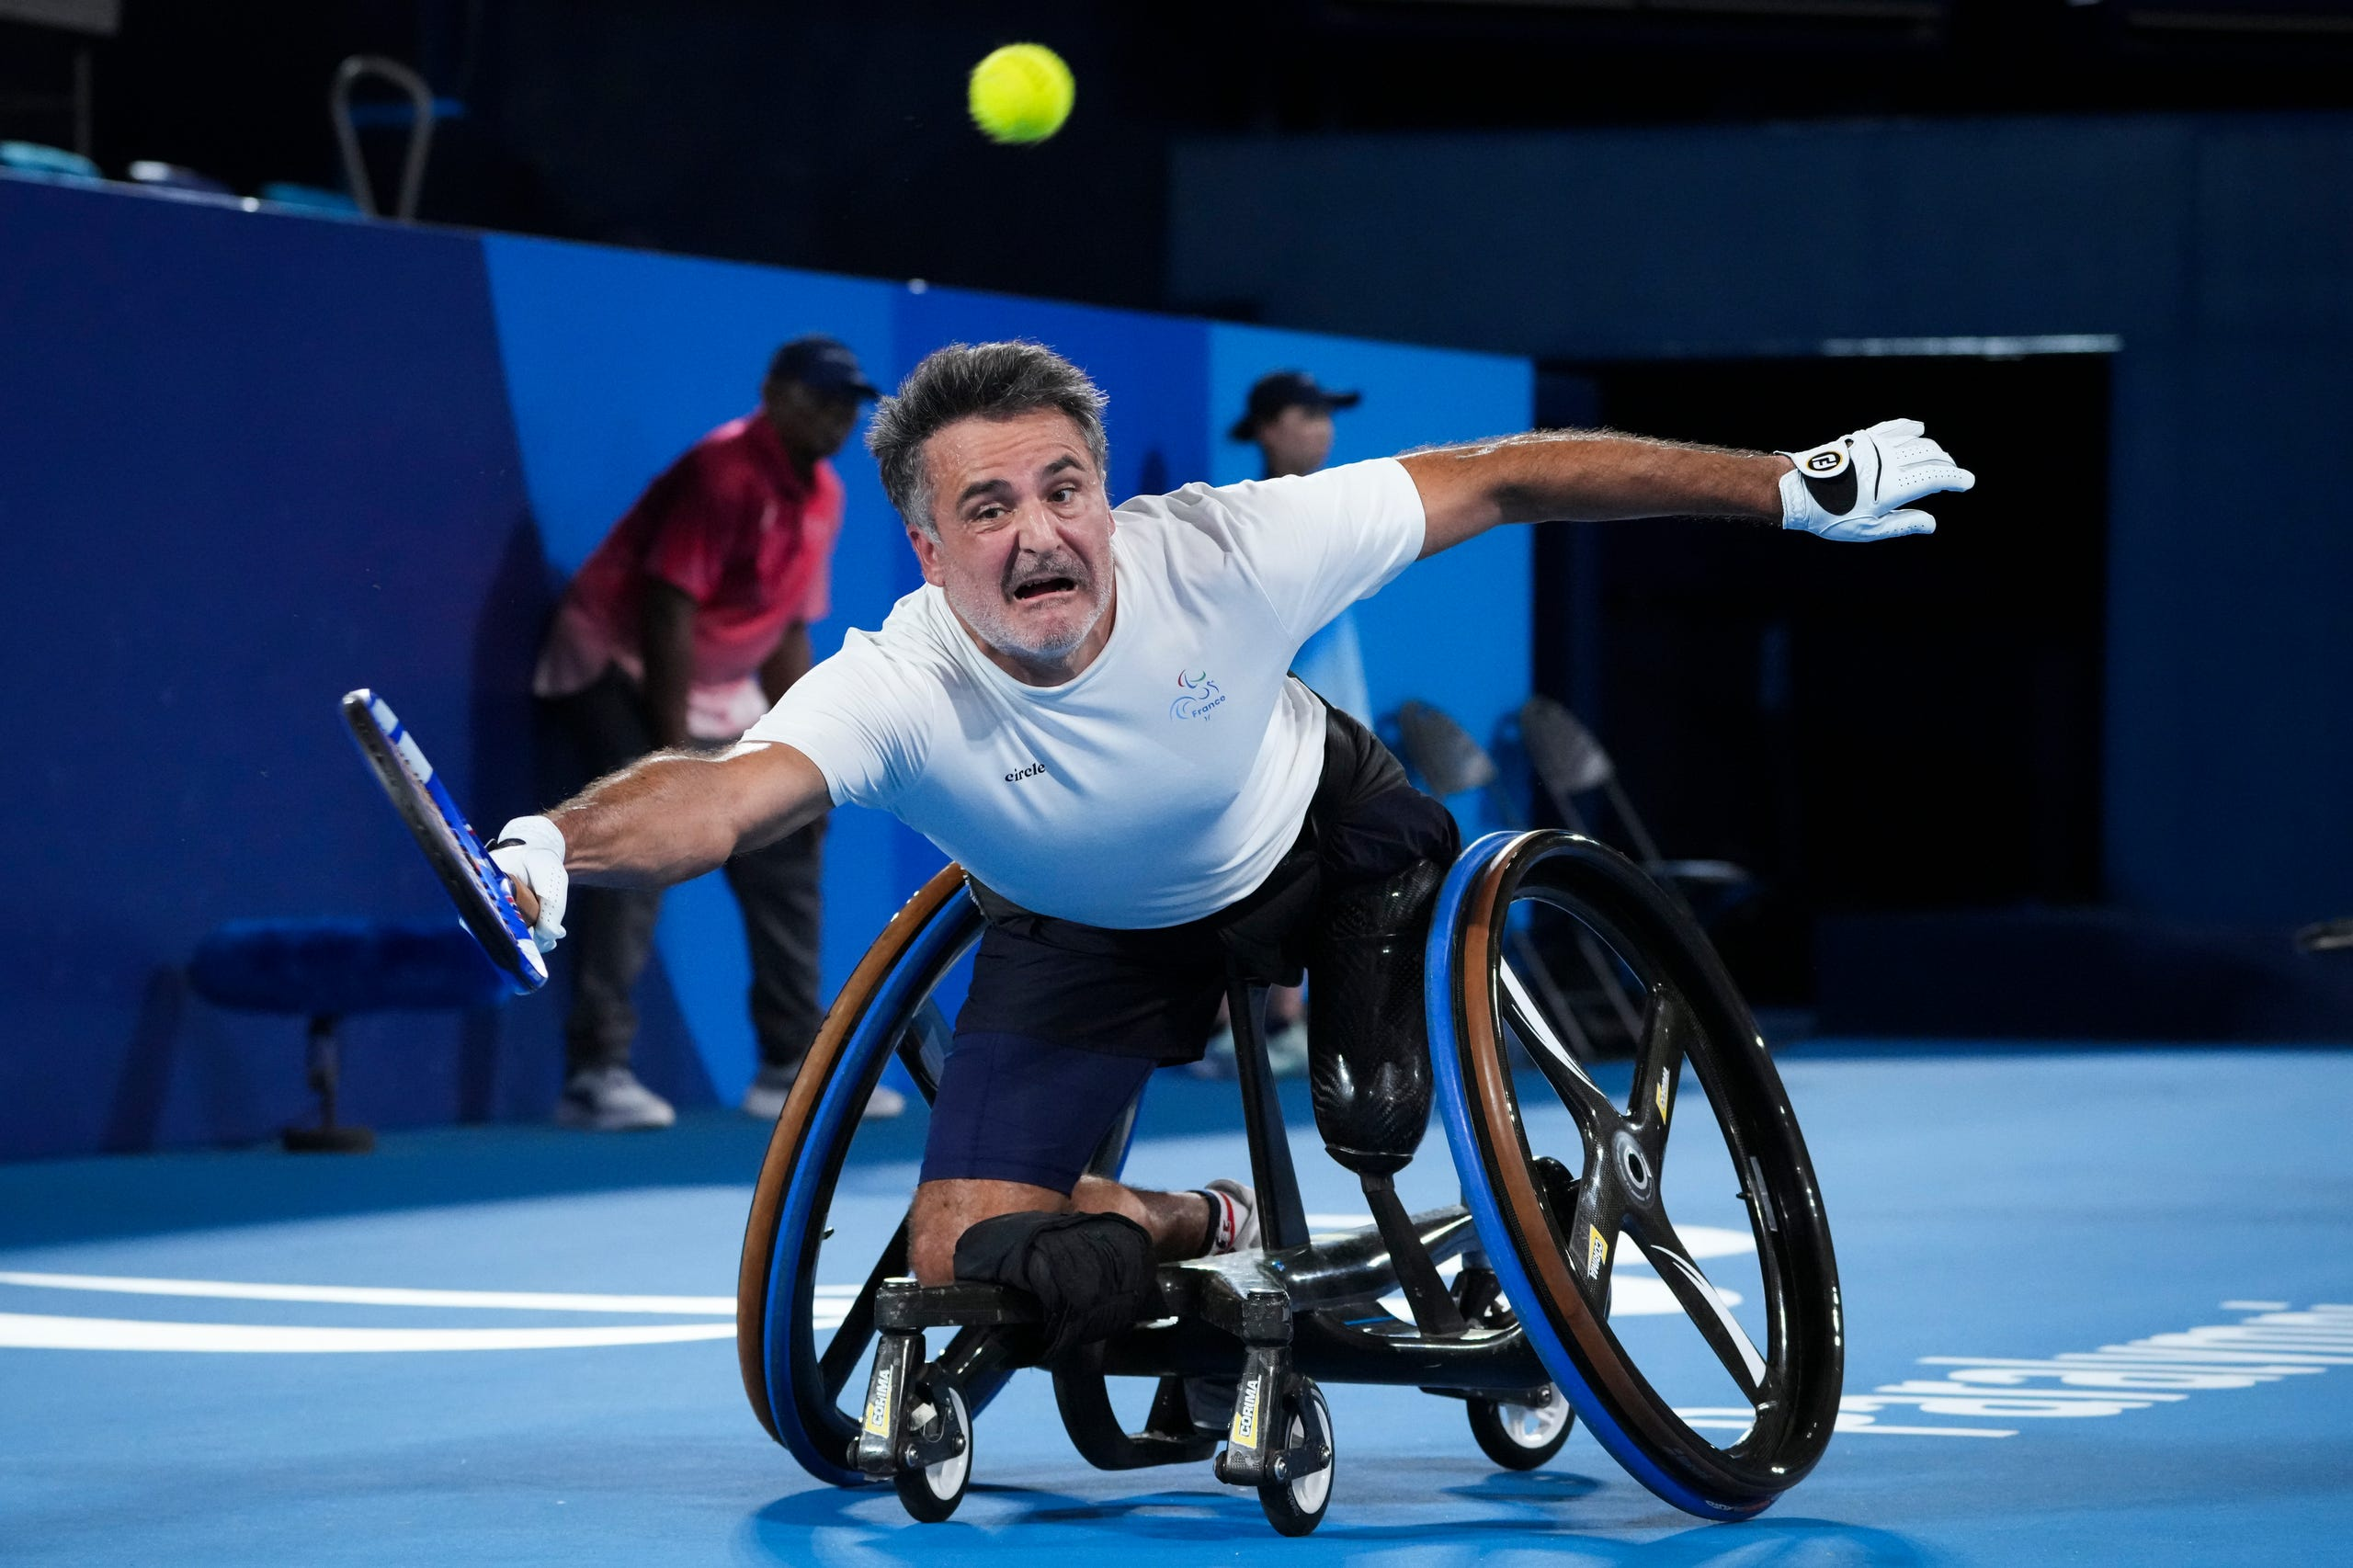 Sept. 3: Stephane Houdet of Team France competes against Alfie Hewett and Gordon Reid of Team Great Britain in the Men's Doubles Gold Medal Match on day 10 of the Tokyo 2020 Paralympic Games at Ariake Tennis Park.